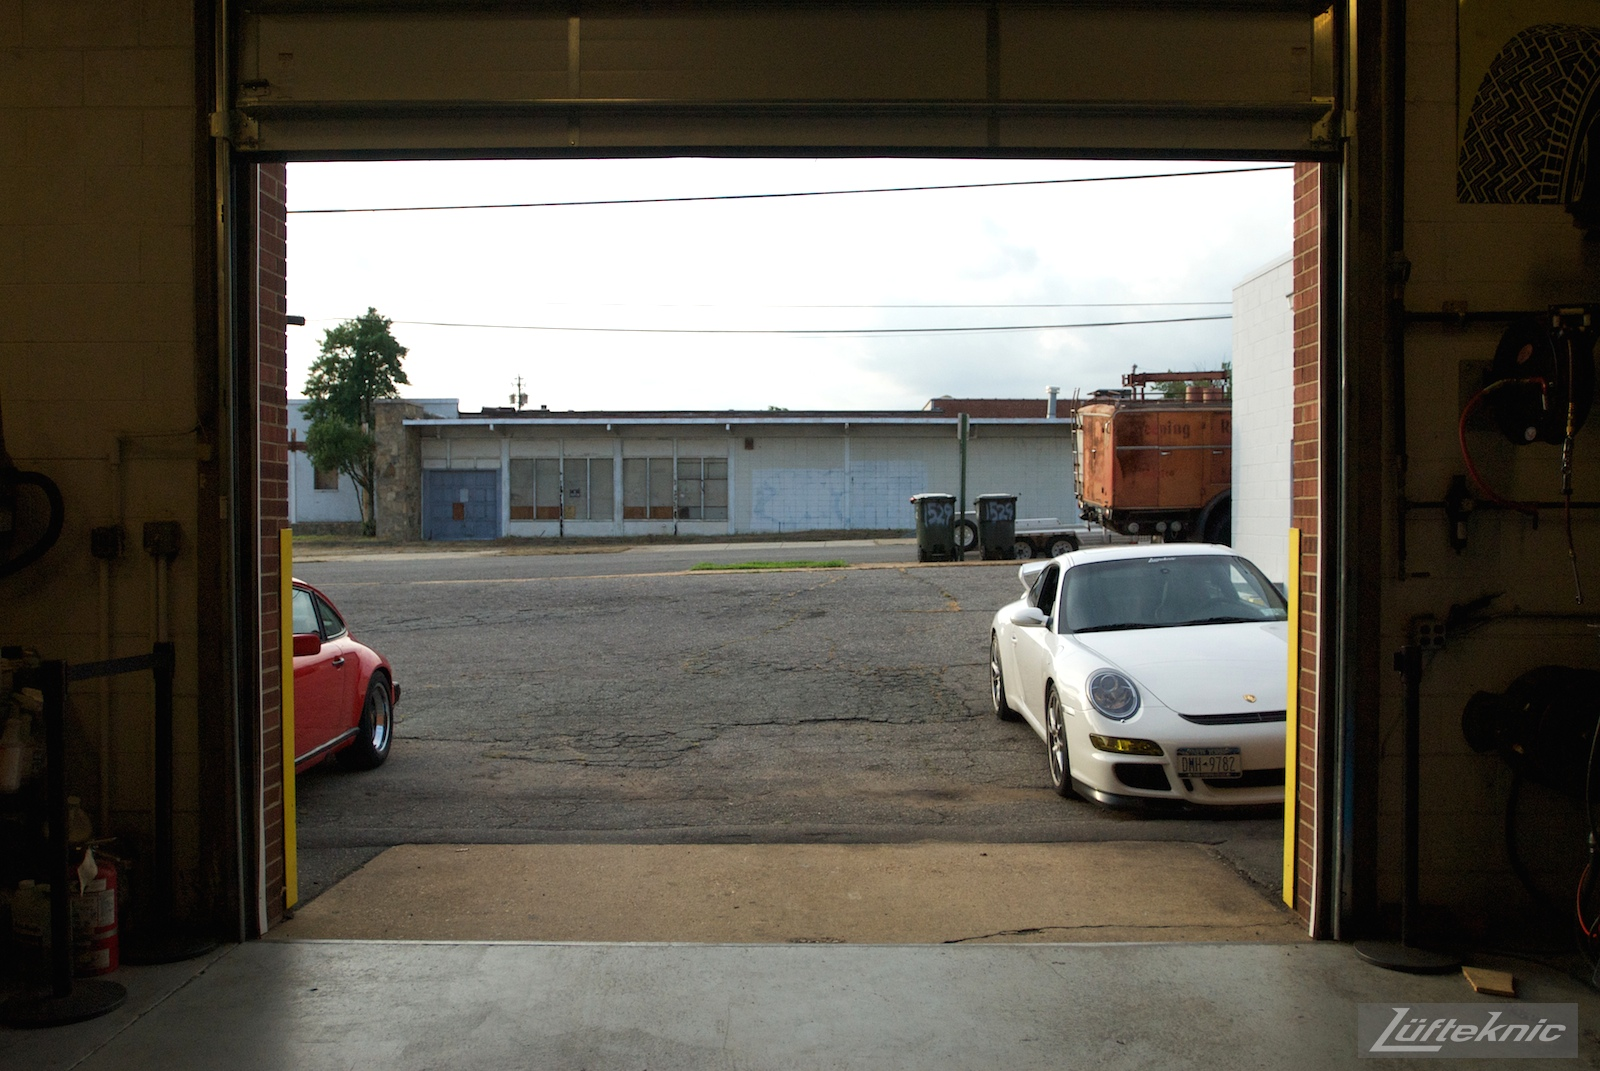 A white 997 GT3 sitting just outside the Lufteknic shop door with other Porsches shown.